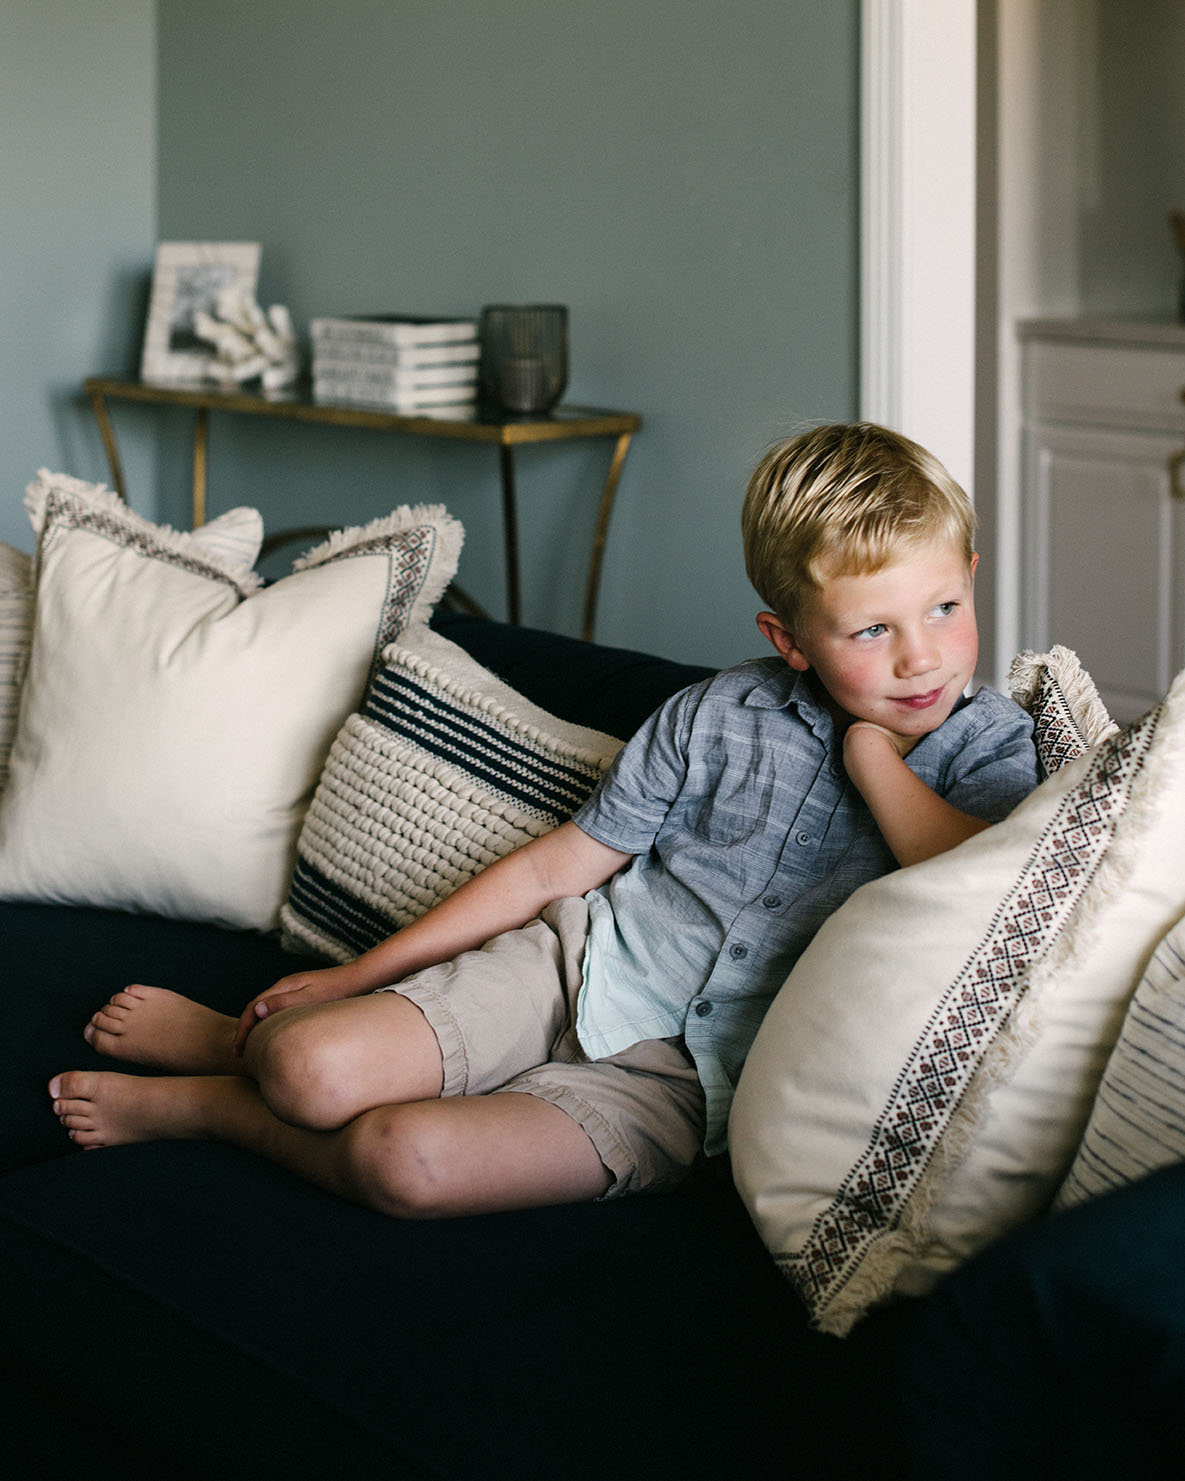 boy-portrait-on-couch